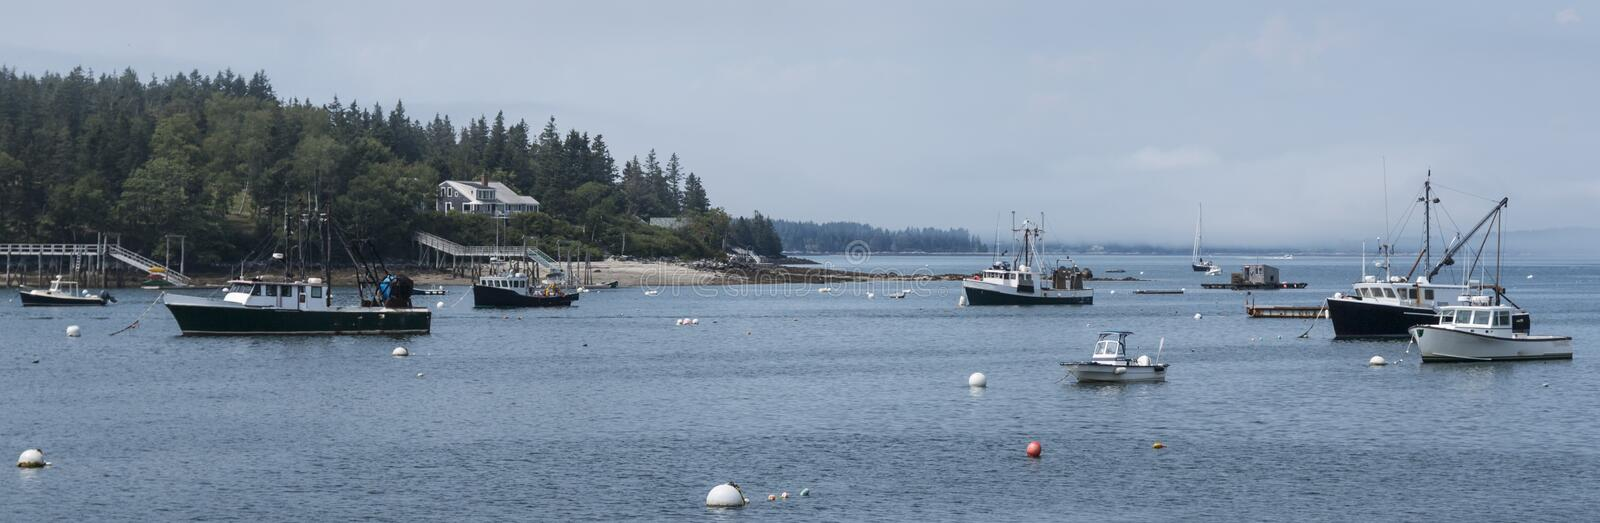 Harbor in Maine with commercial fishing boats moored royalty free stock photography